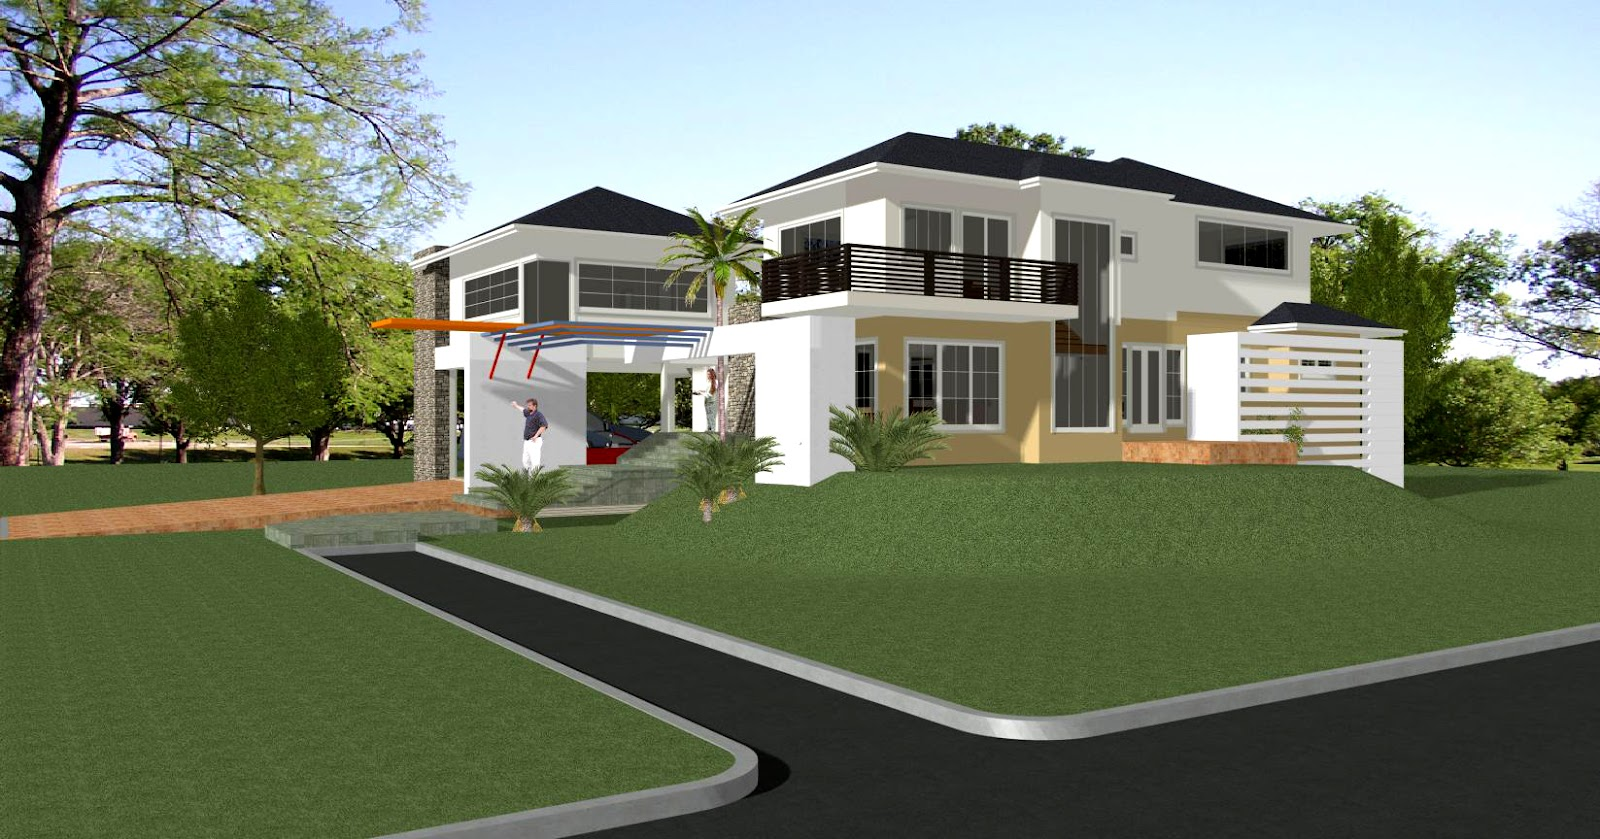 Dream home designs erecre group realty design and for Dream home house plans